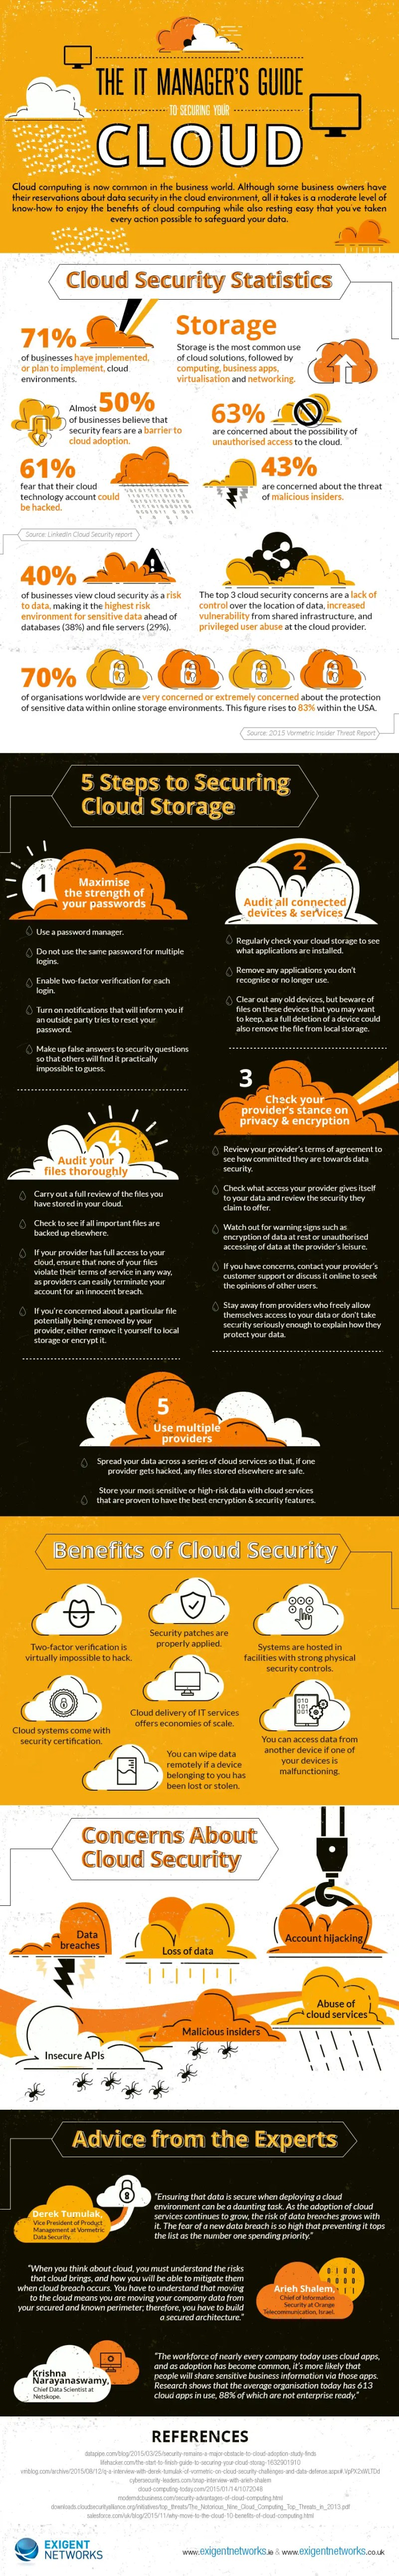 The IT managers guide to securing your cloud - infographic